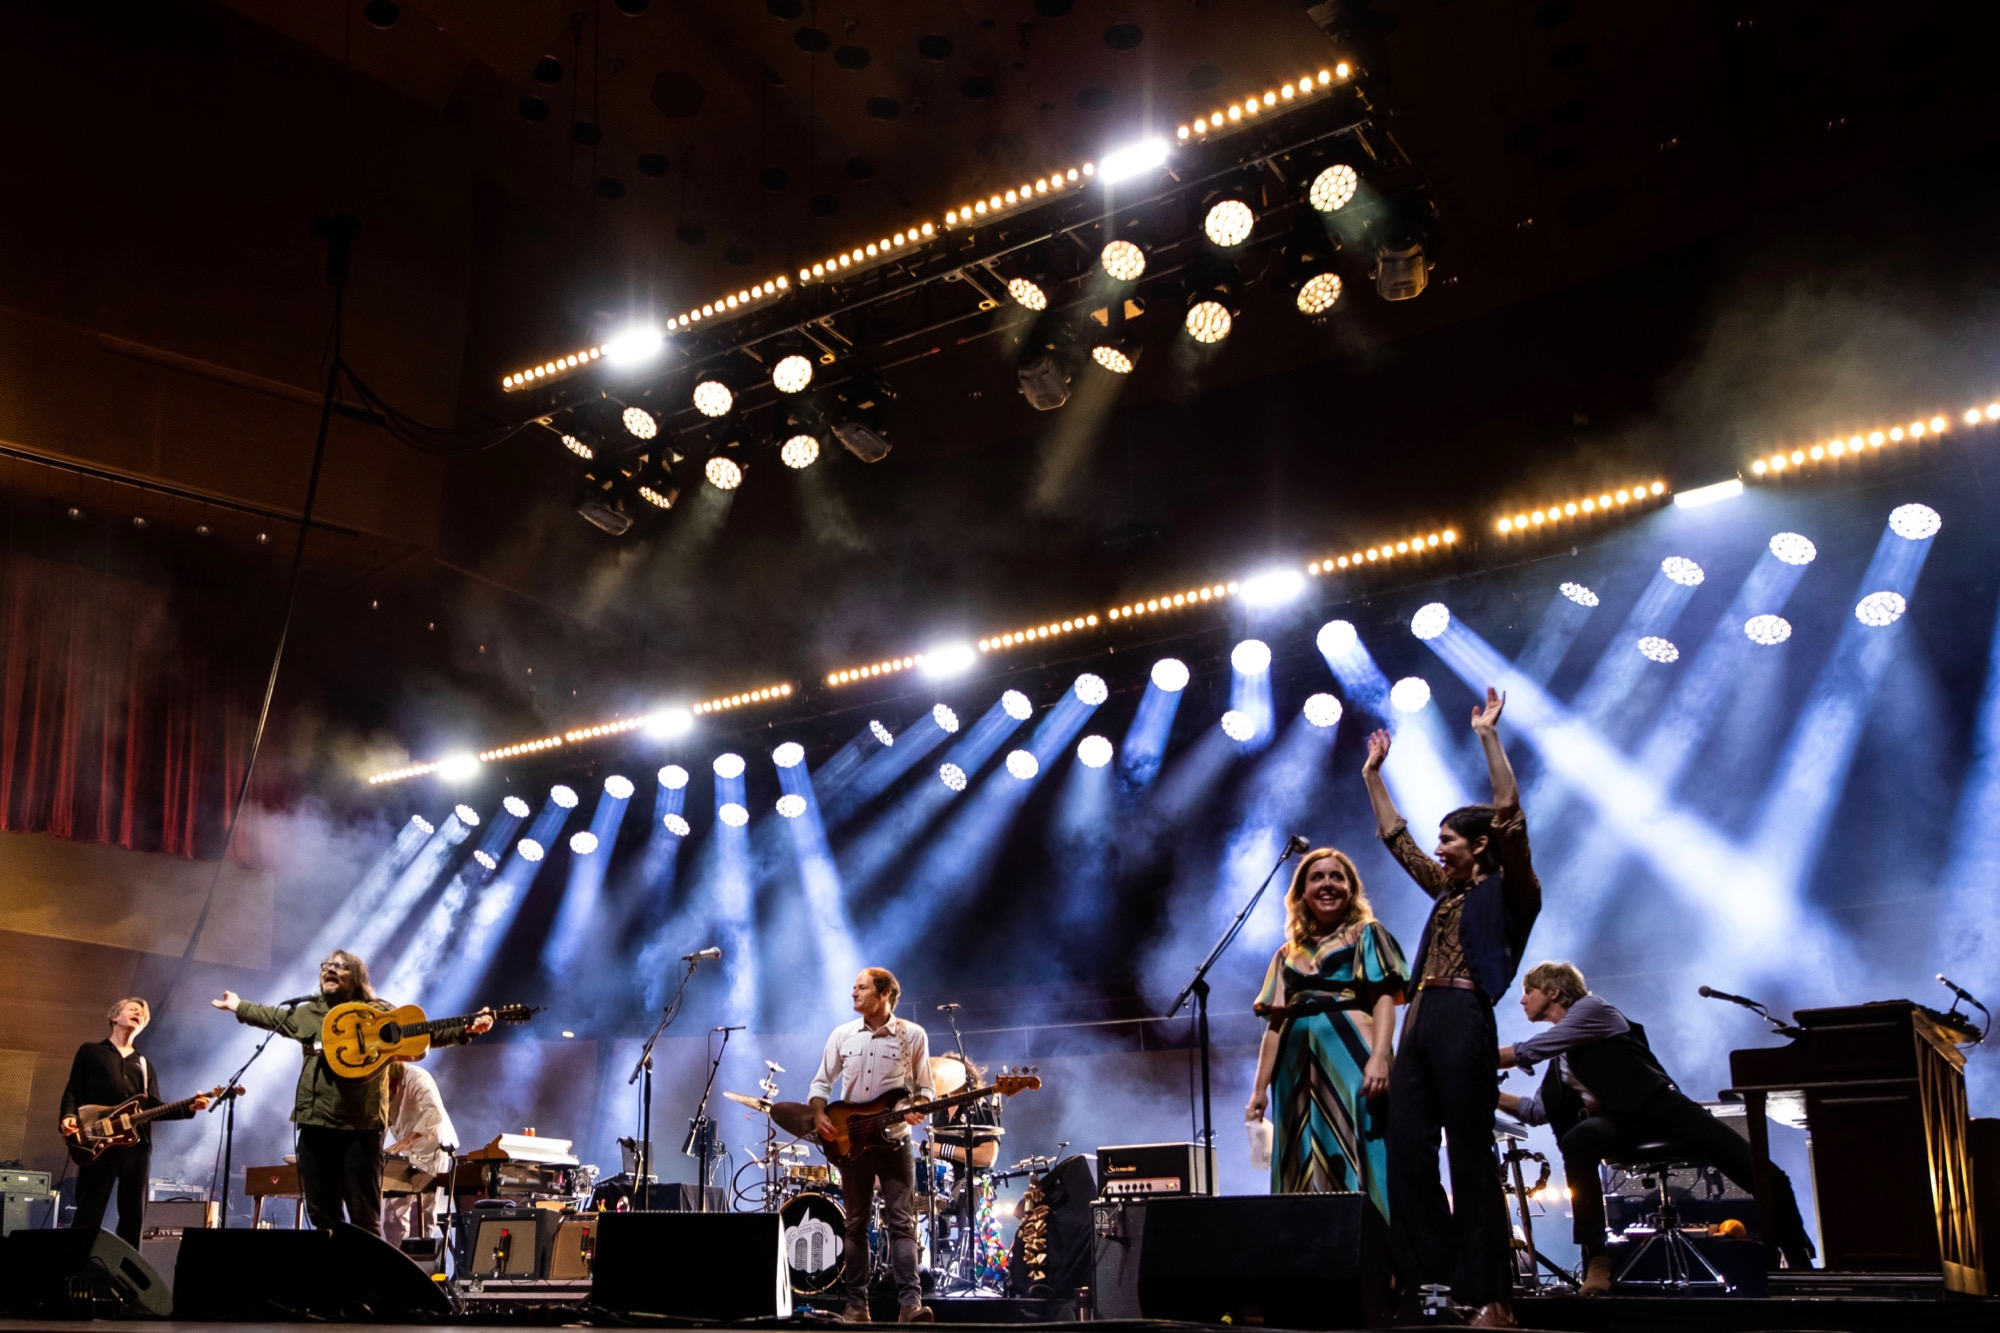 Sleater-Kinney joins Wilco on stage at Pritzker Pavilion in Chicago on Aug. 28, 2021.